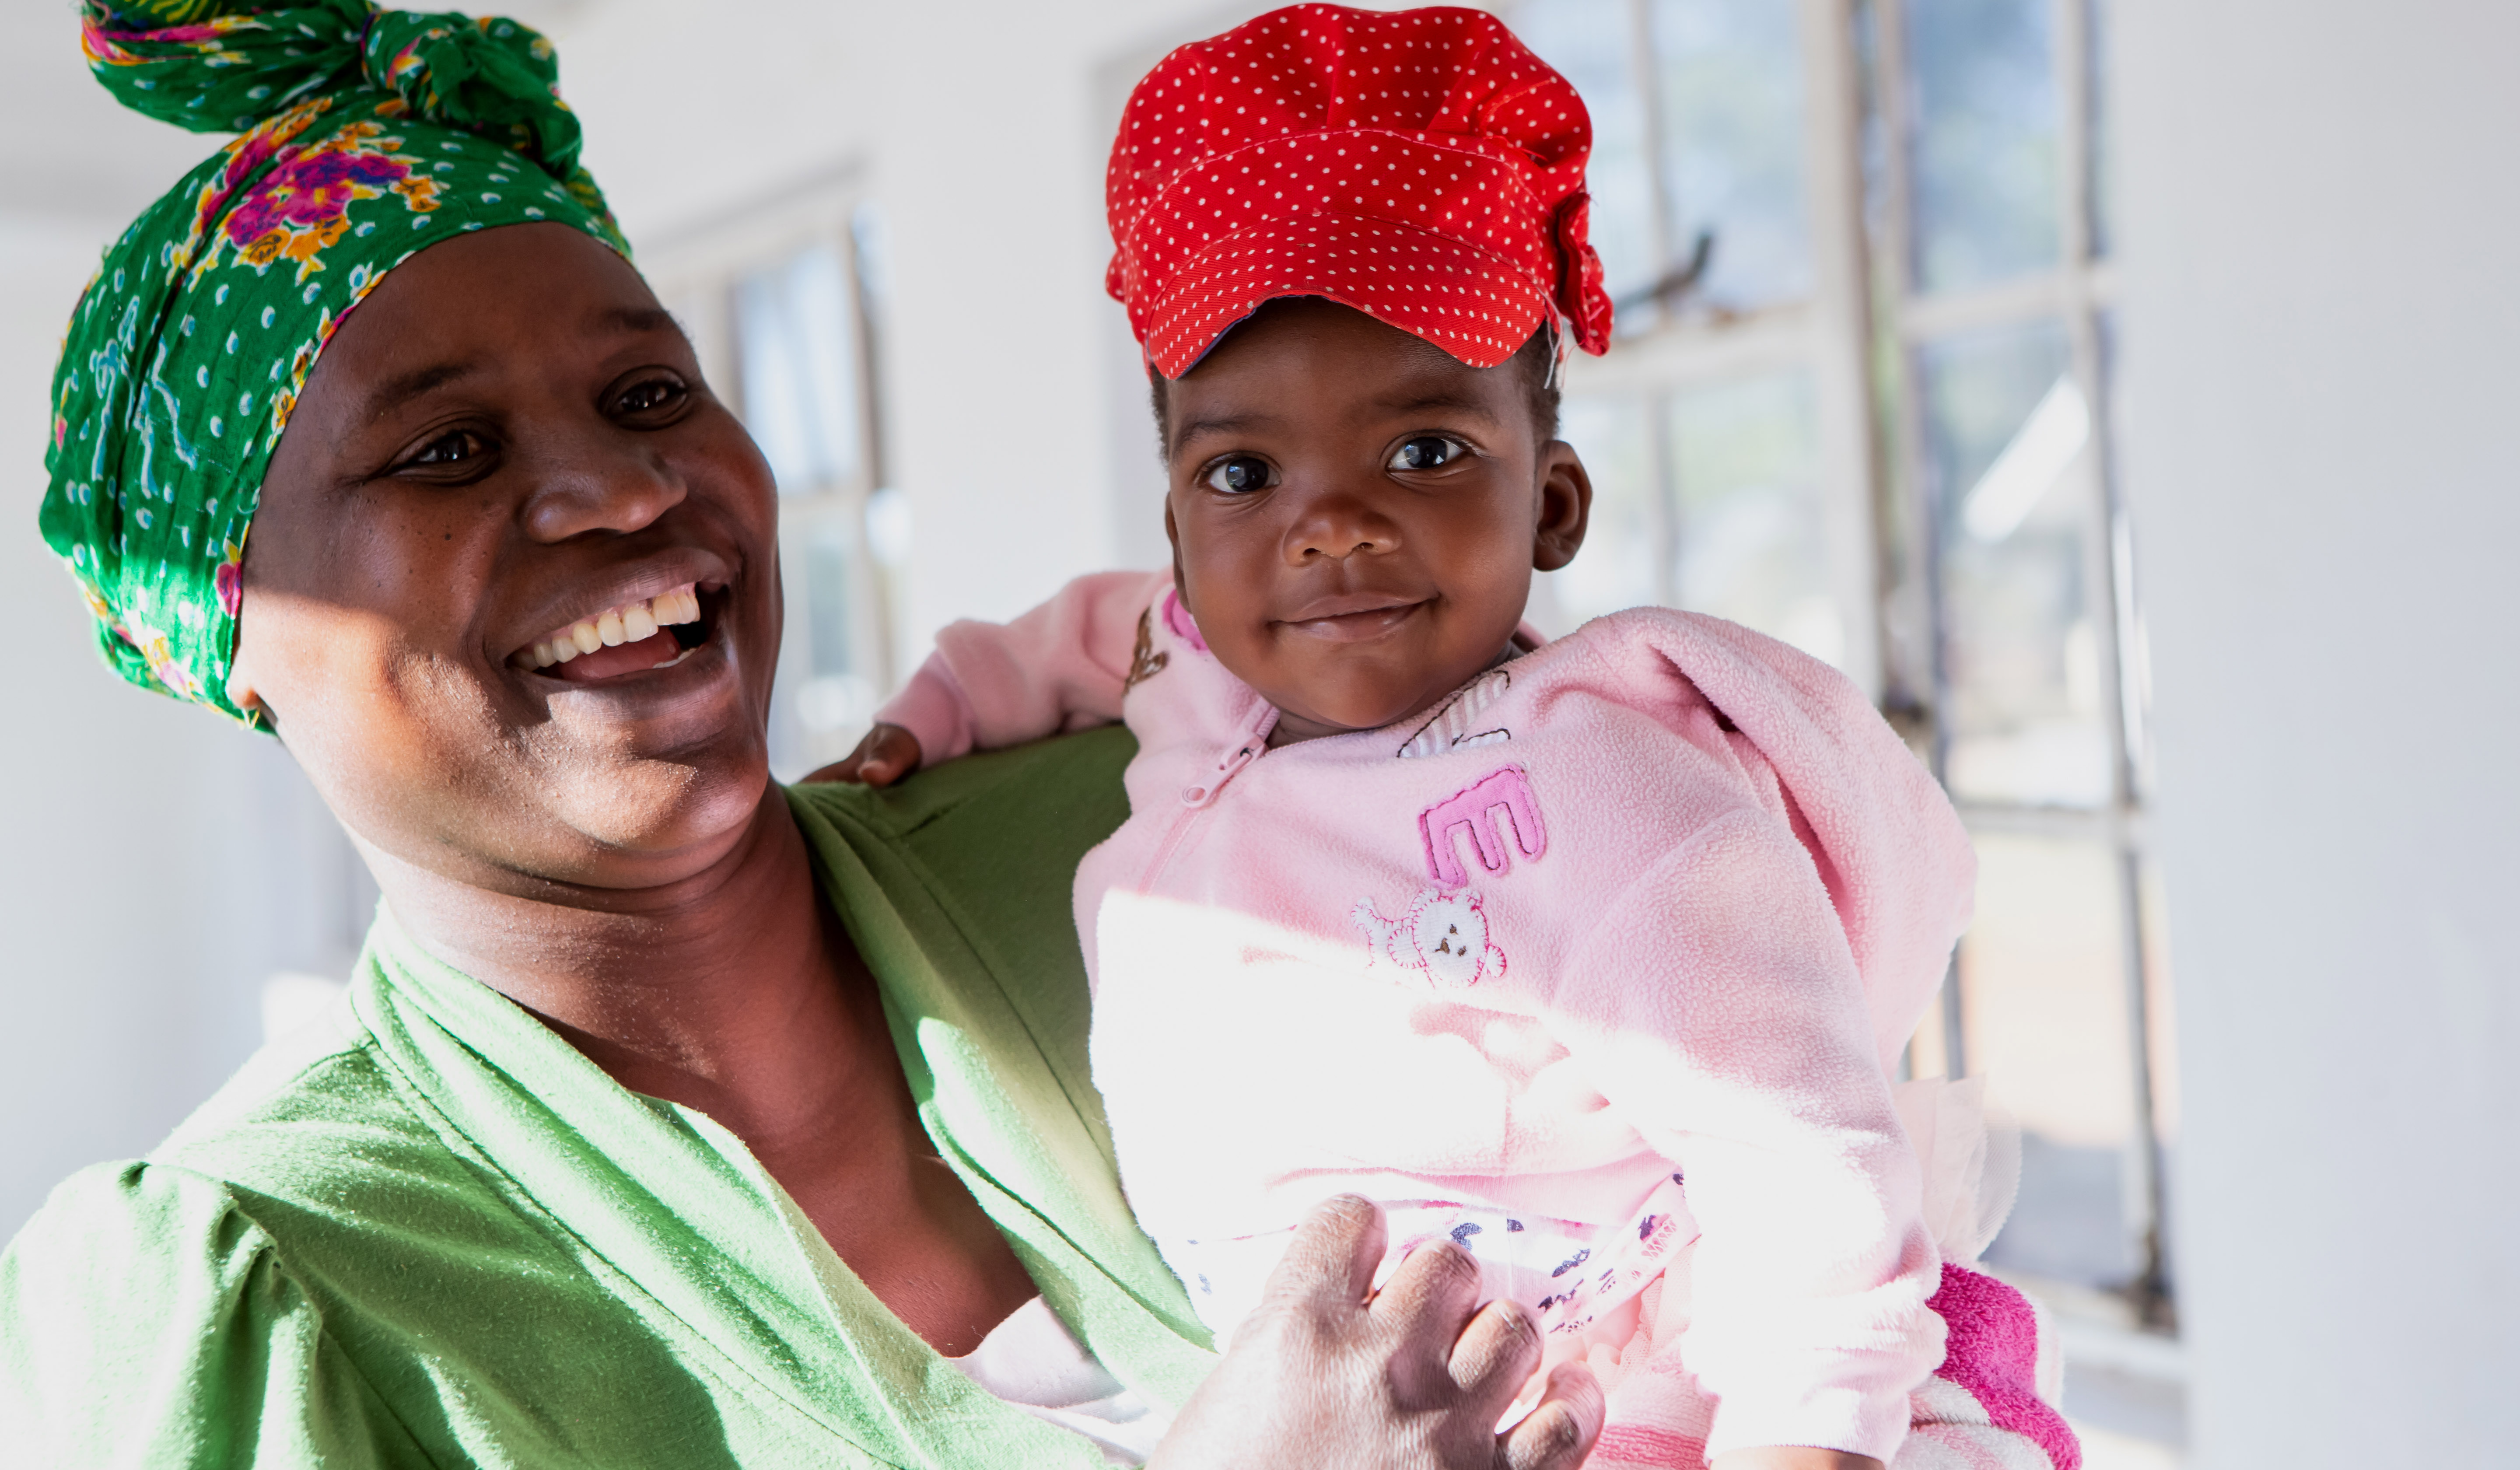 UN initiatives are helping to enhance the lives of mothers and children across the country.